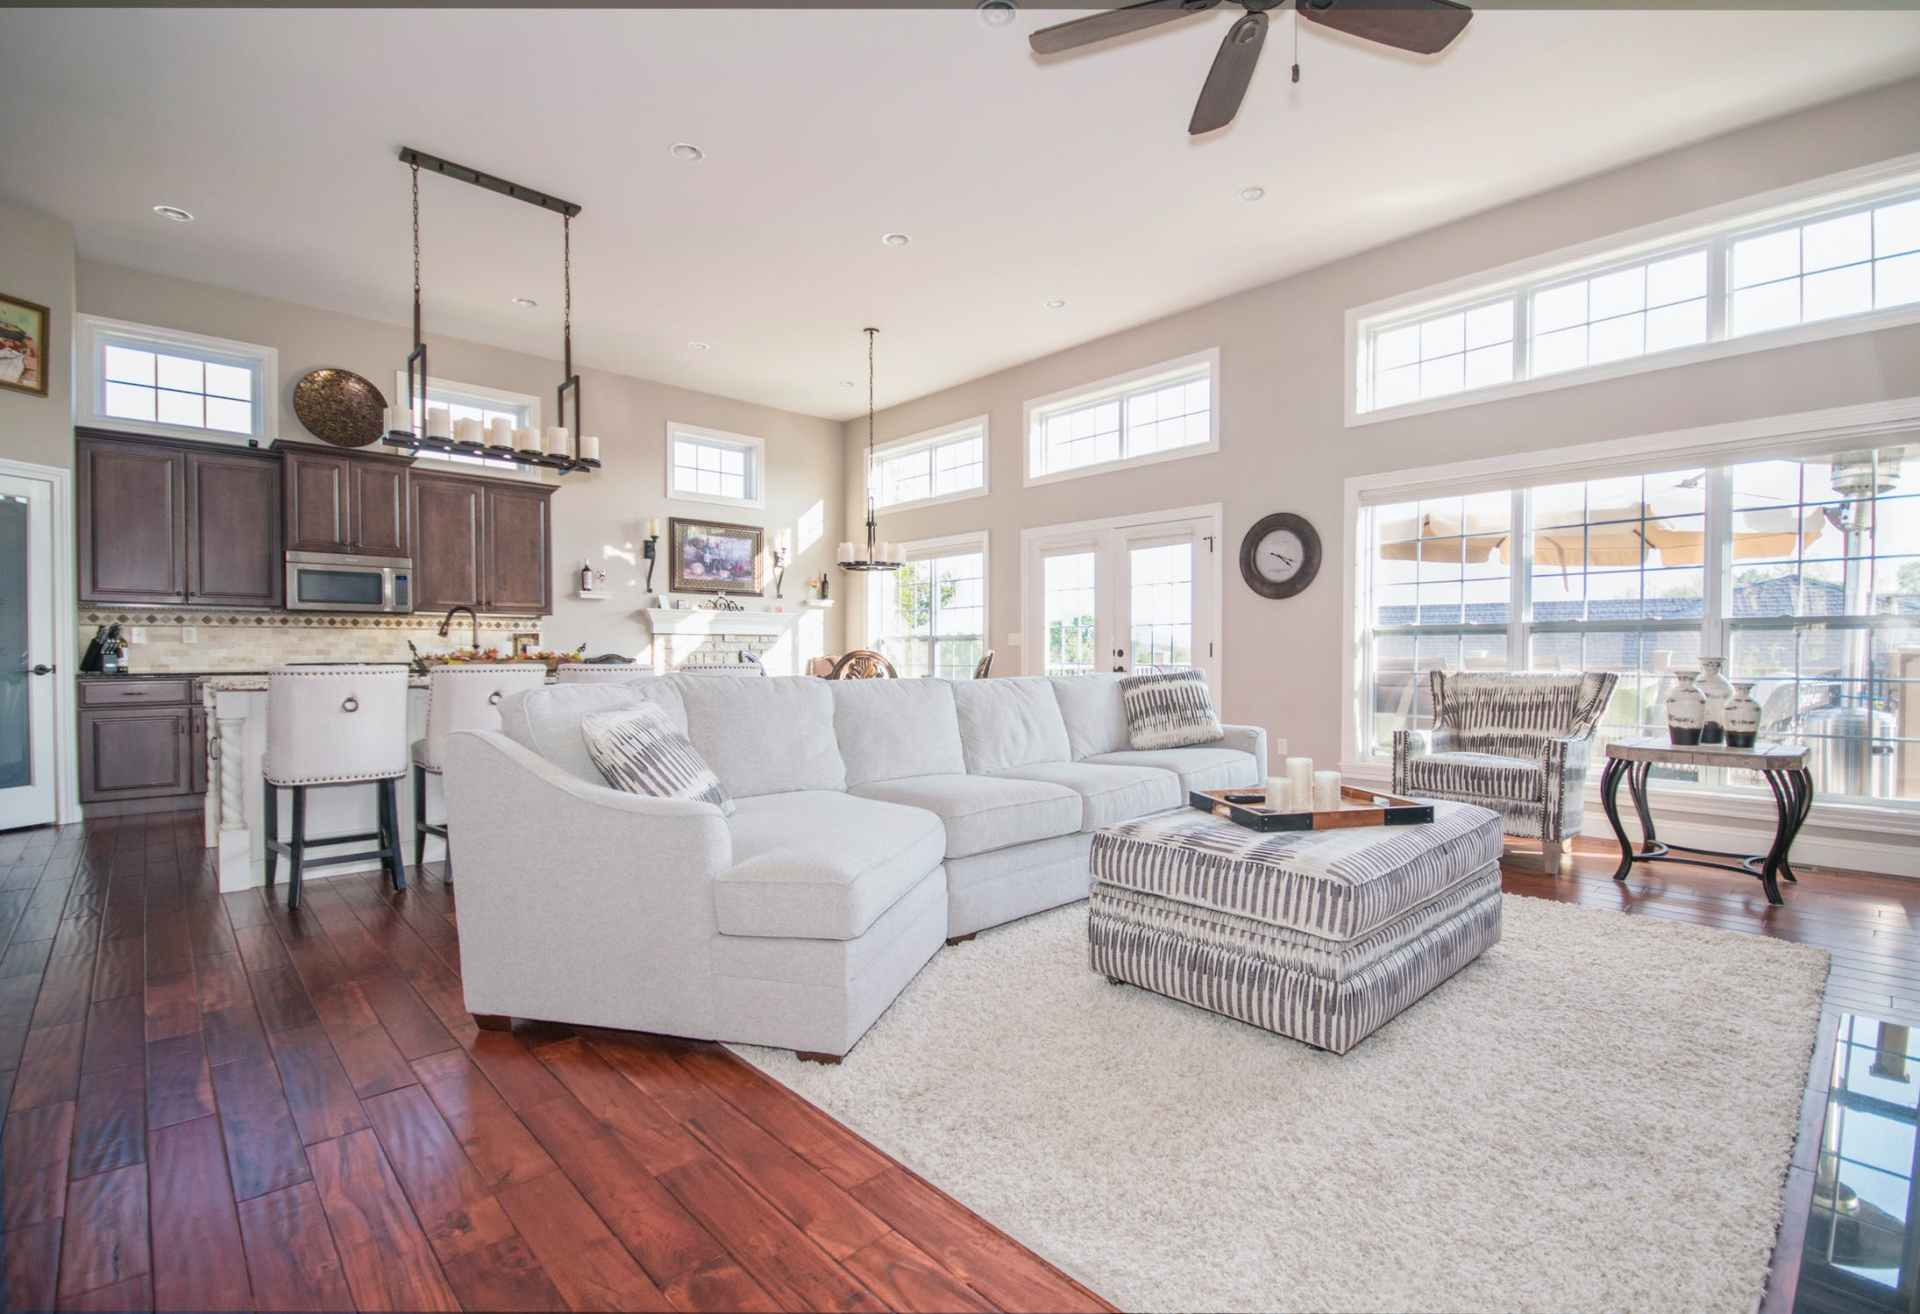 Washington Post Tells How To Prevent Sun Faded Furnishings & Floors - Home Window Tinting Denver, Colorado